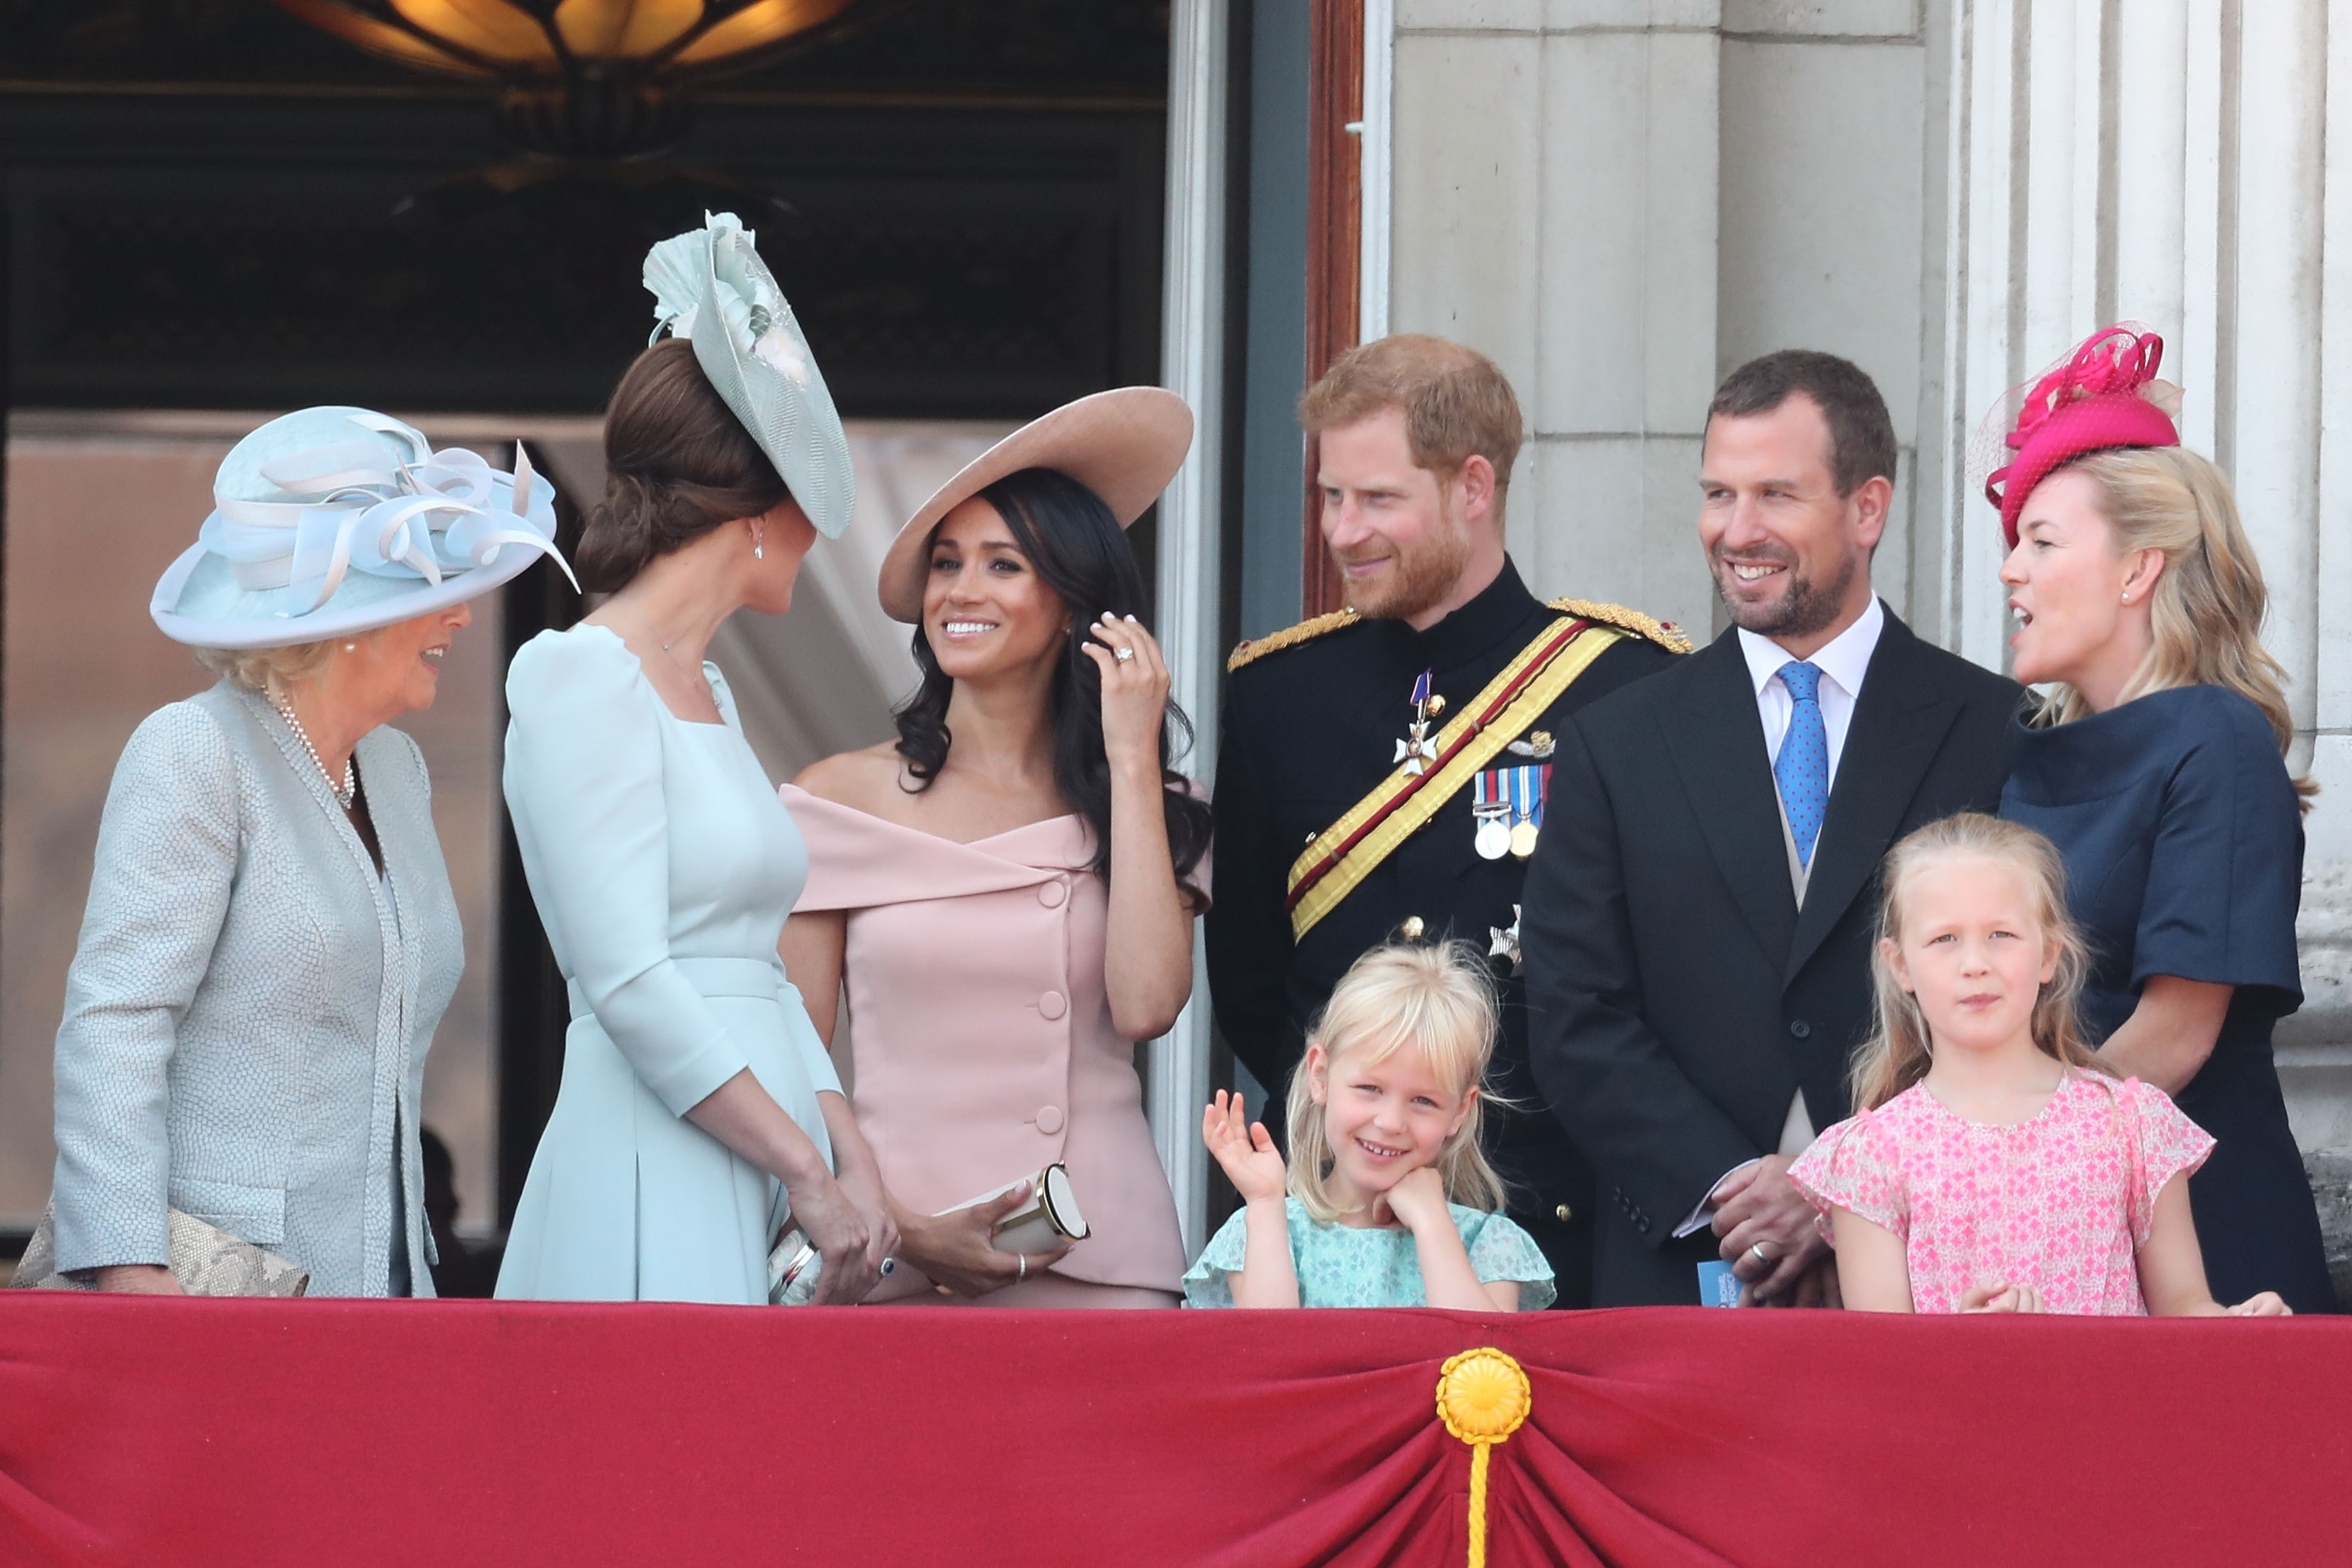 familia-real-meghan-markle-trooping-the-colour